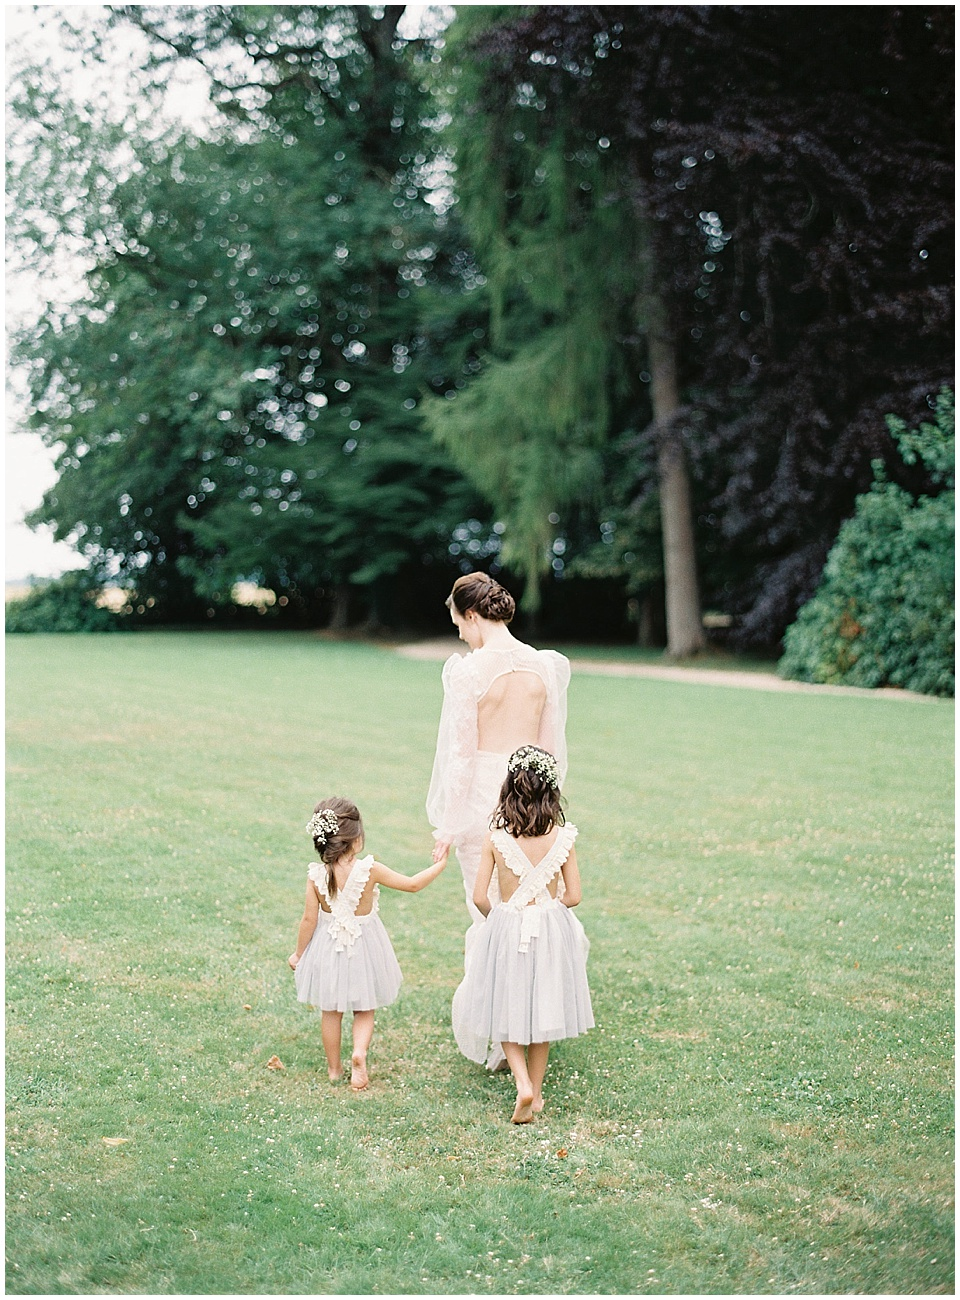 Light blue flower girl dress | Yolan Cris wedding gown | French Wedding Inspiration | France Wedding | Destination Film Photographer | Paris Wedding | Fine Art Film Photographer | Chateau De Carsix | Whiskers and Willow Photography.jpg